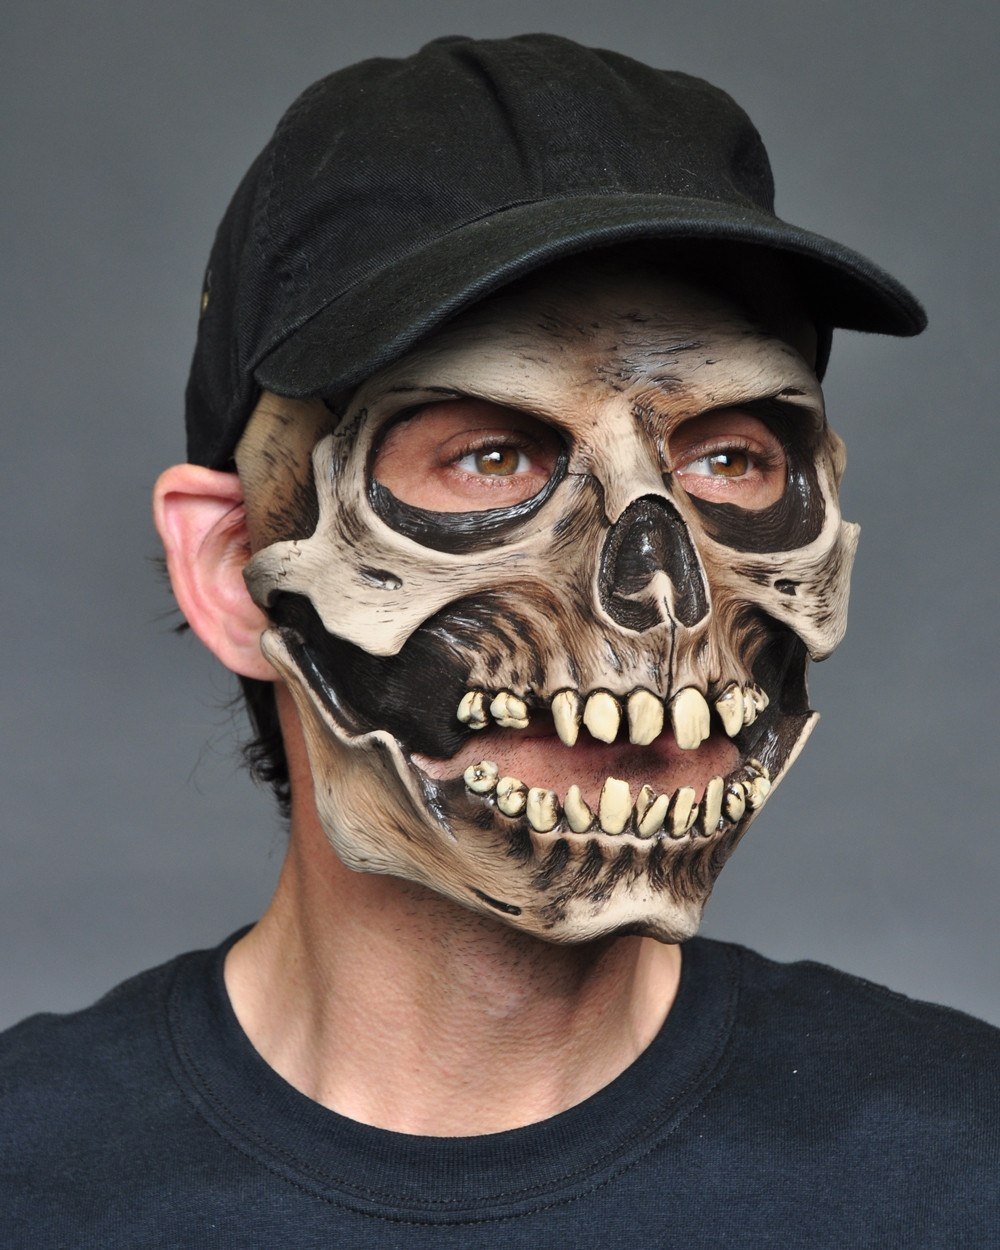 Skull Halloween Mask With Cap And Moving Mouth – Disguises